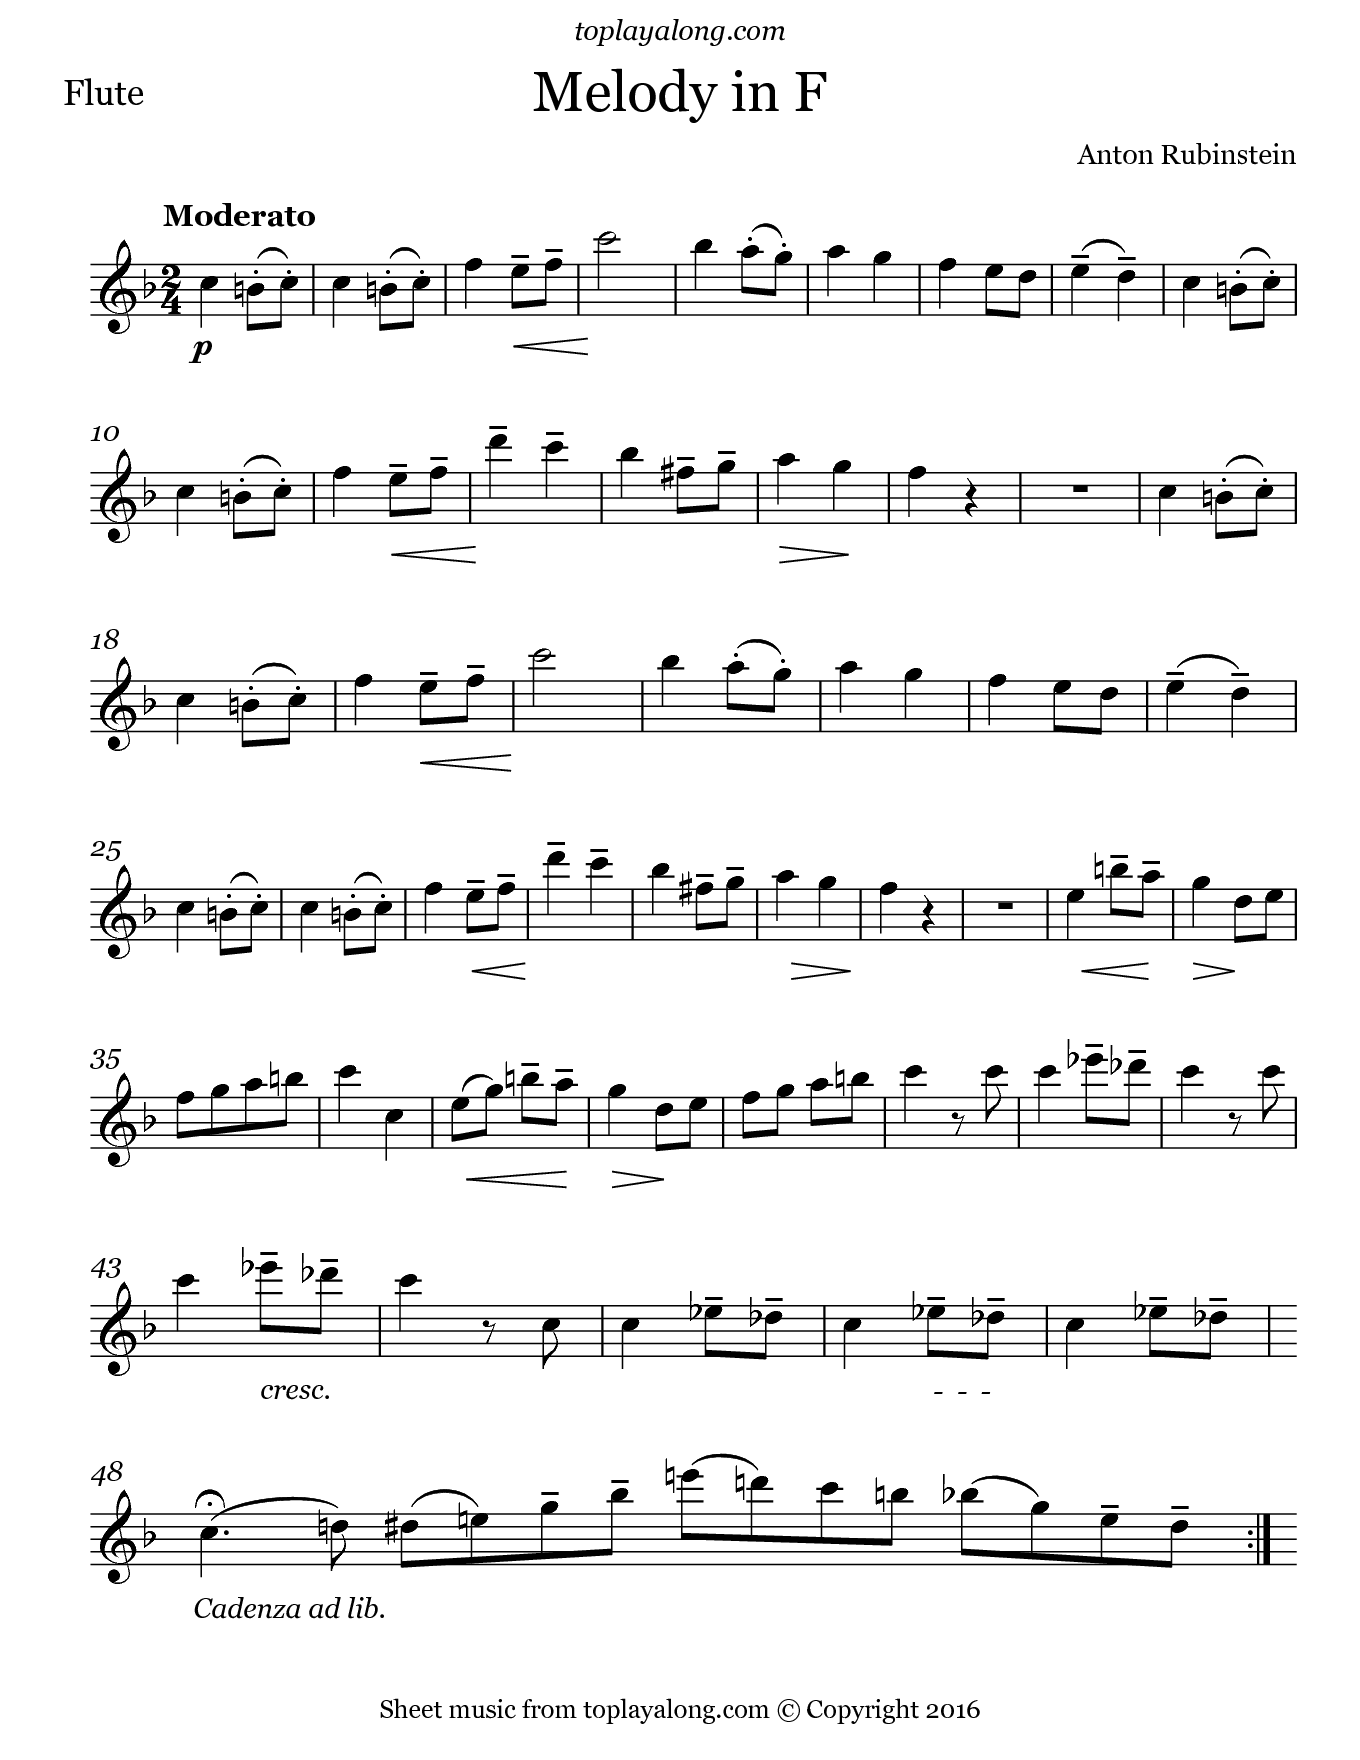 Melody in F by Rubinstein. Sheet music for Flute, page 1.